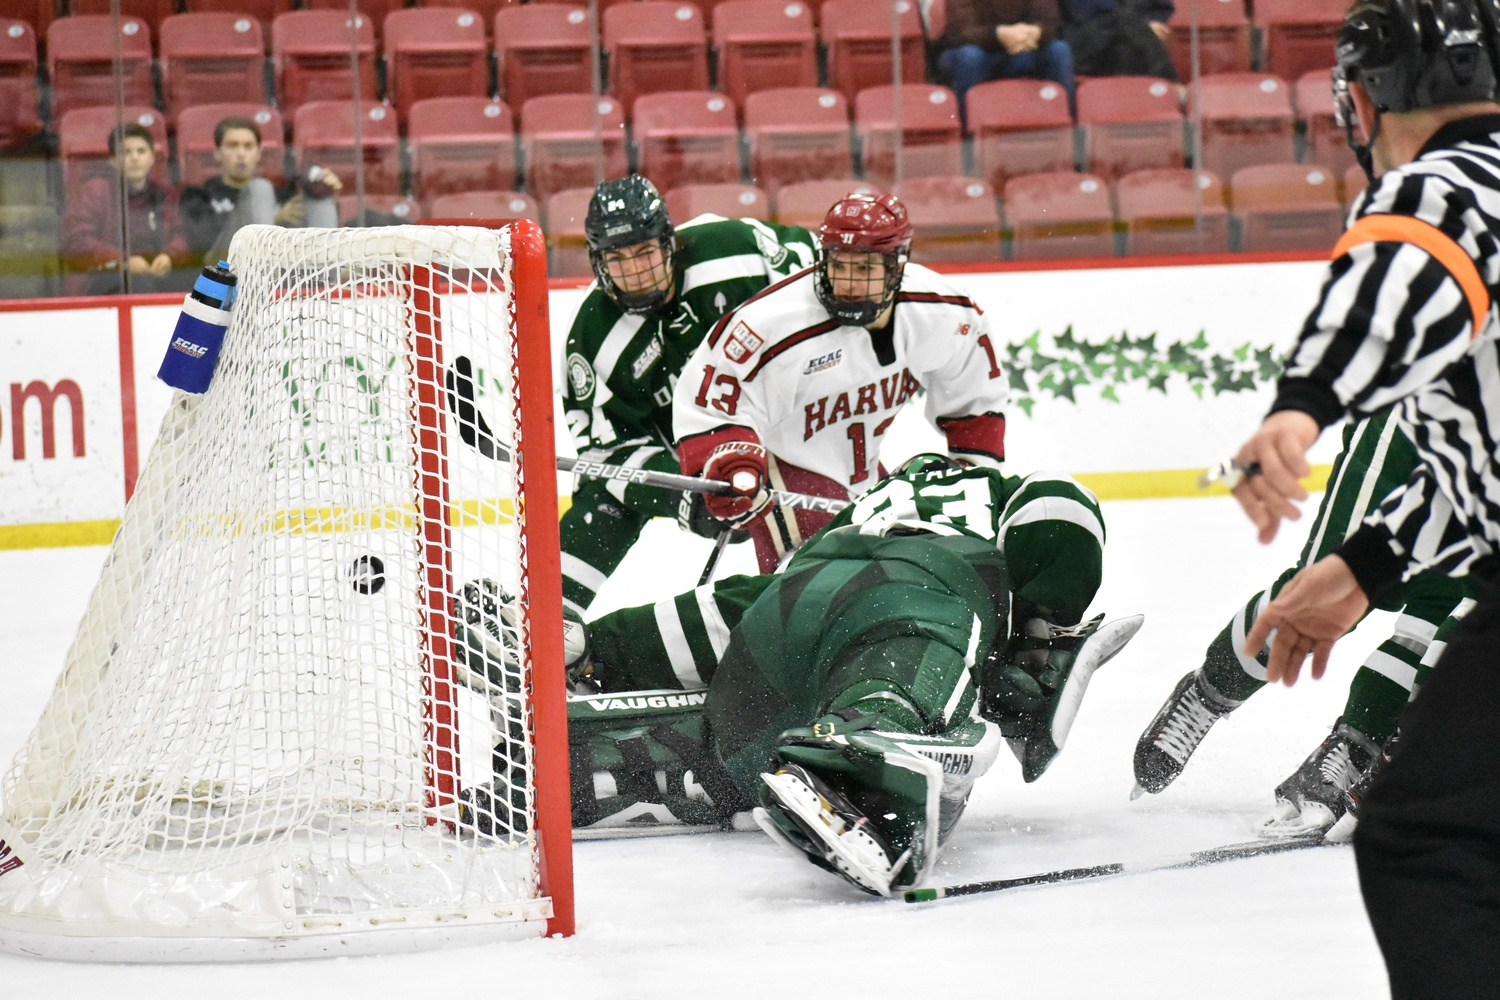 Harvard stormed back to tie the series after a dominant performance all around—two goals from Fox, controlling faceoff play from Donato, and yet another contribution from Krusko (pictured).